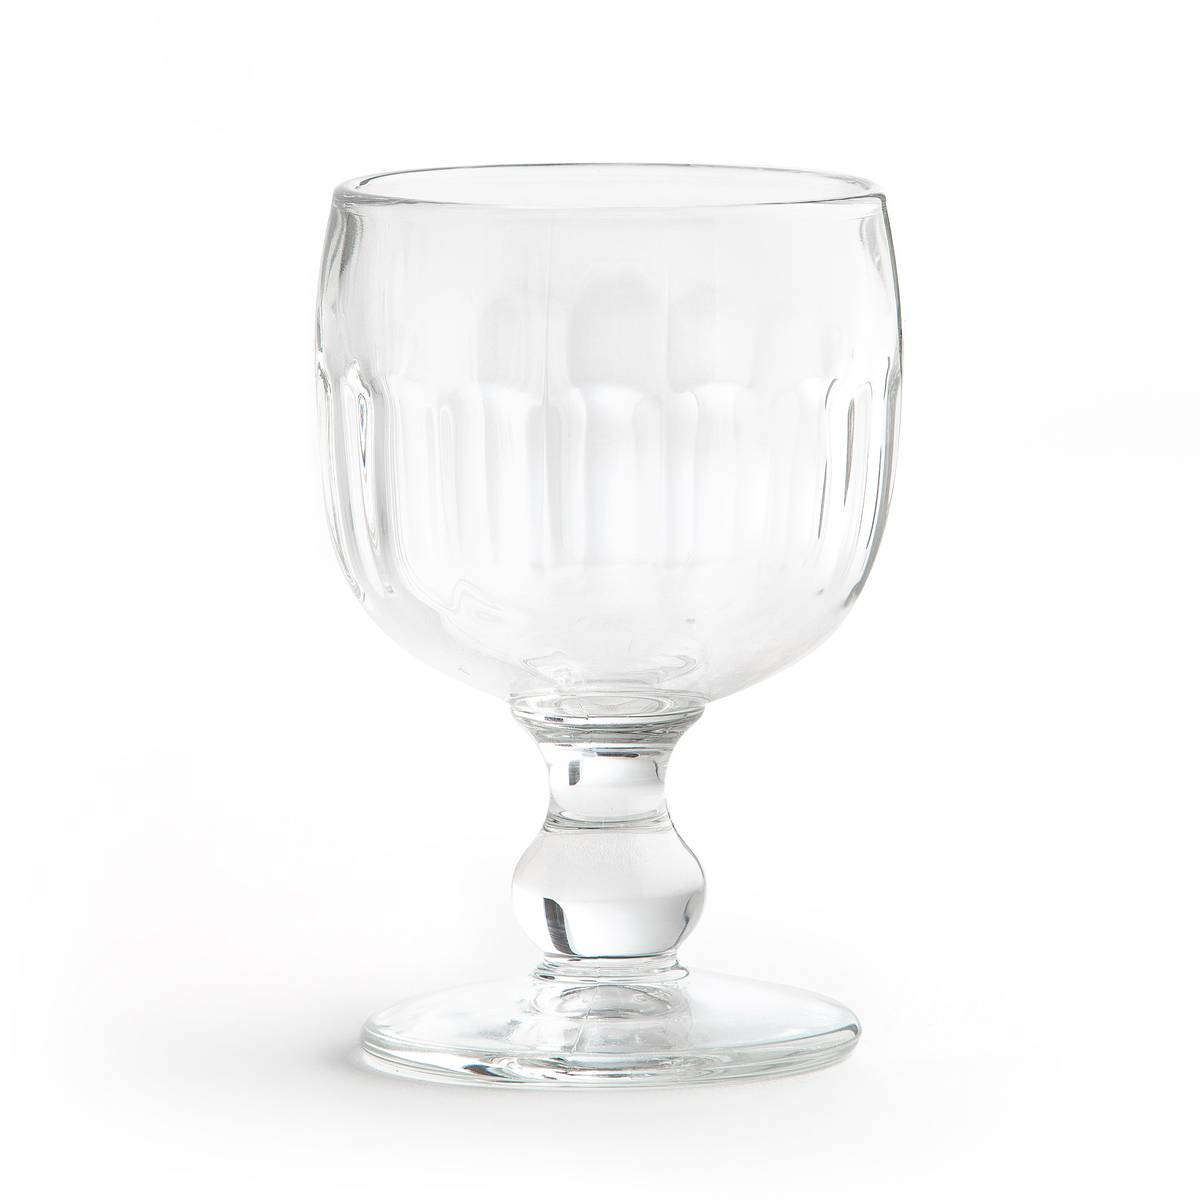 Coblace set of 4 wine glasses